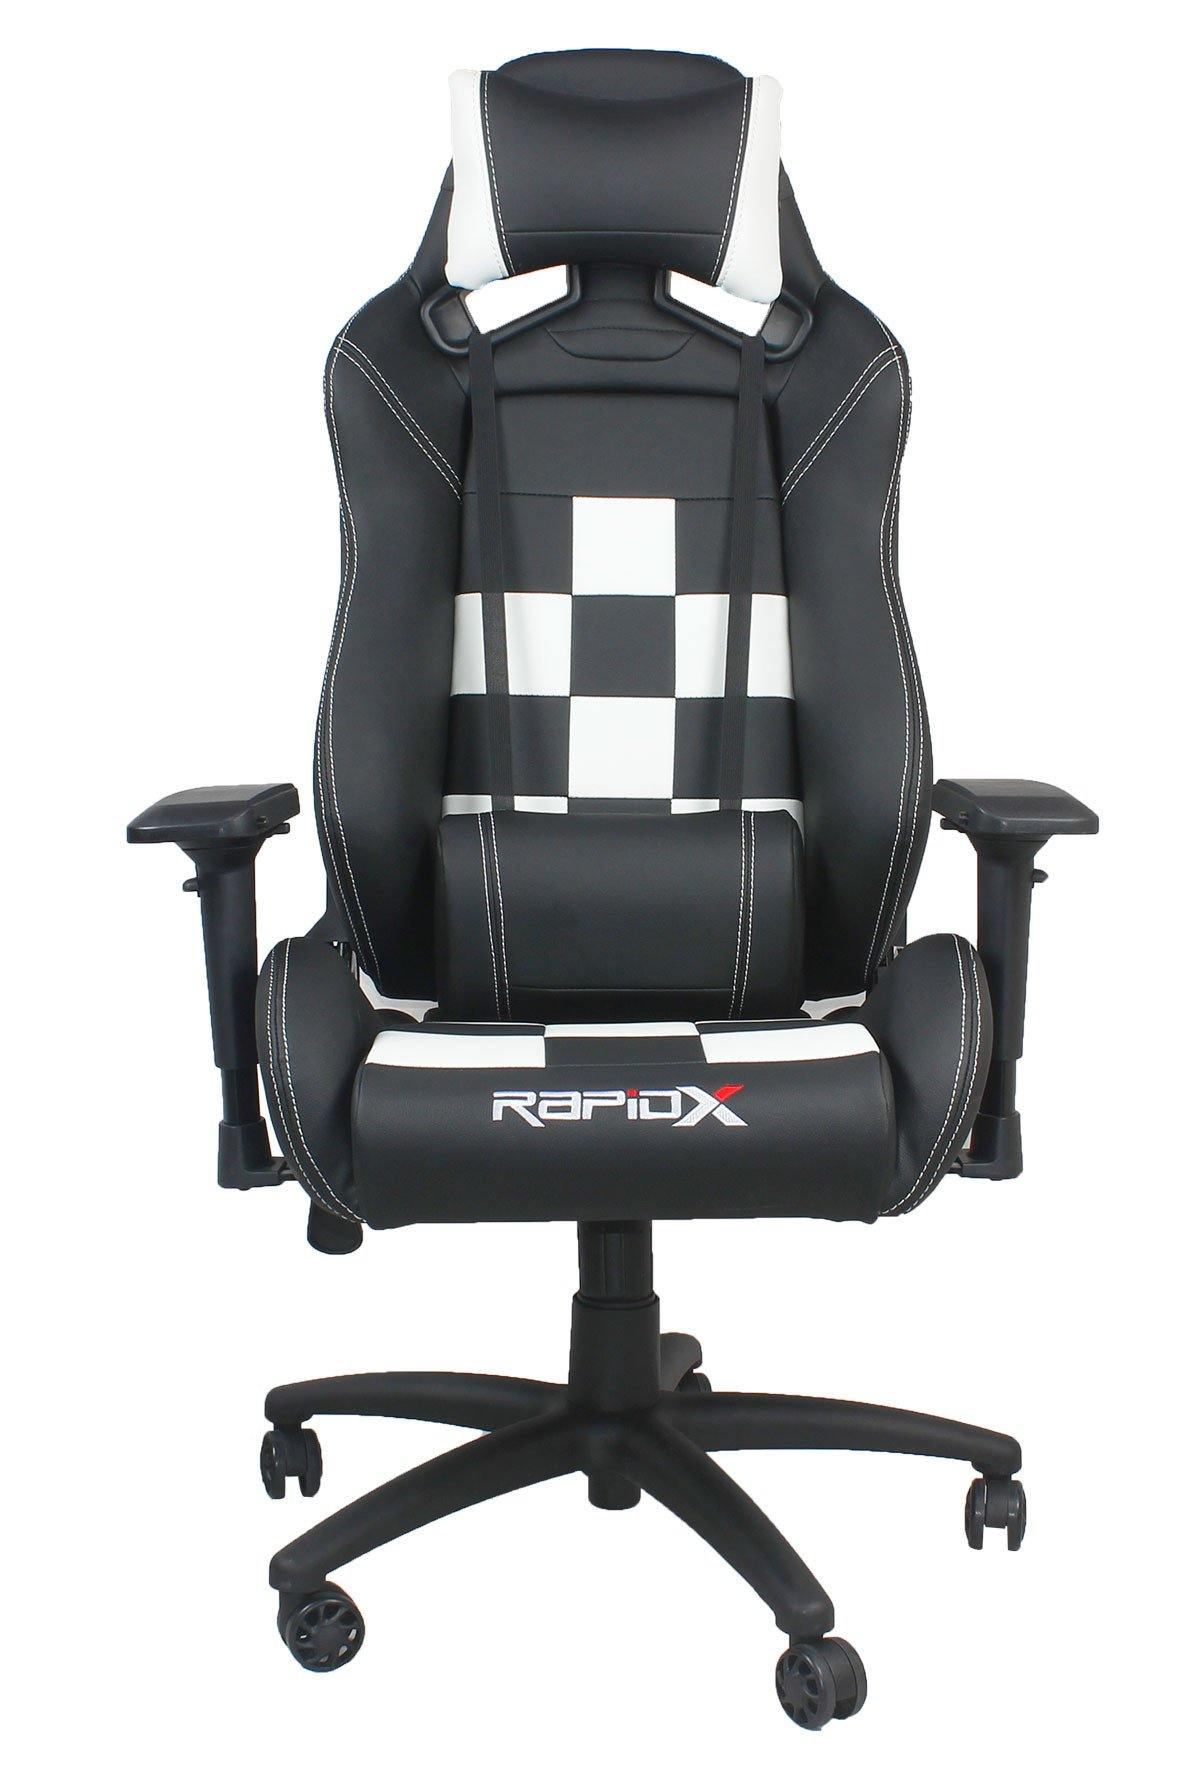 Finish Line Chair - White on Black